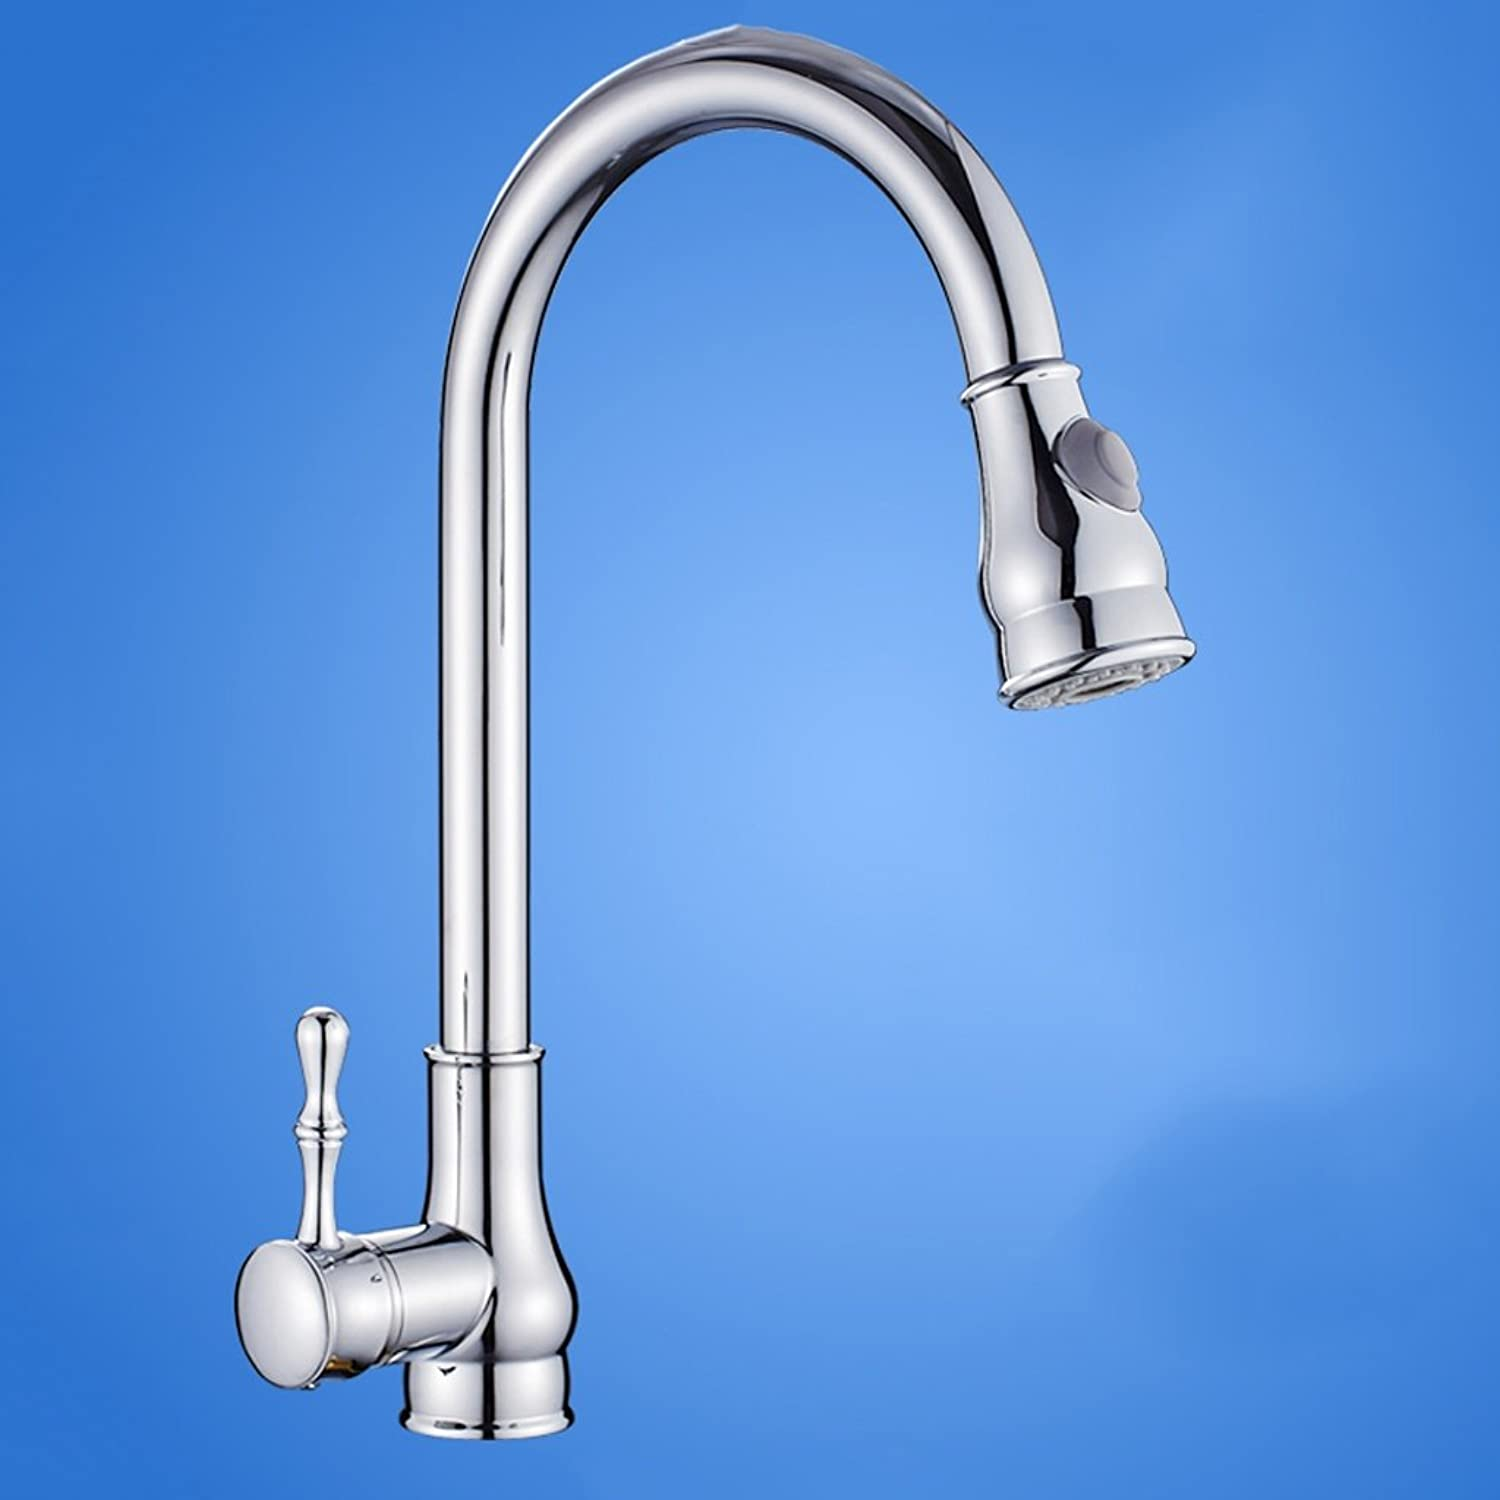 European-style Kitchen Faucet, Pull The Whole Drawing Copper Kitchen Faucet ( color   A )